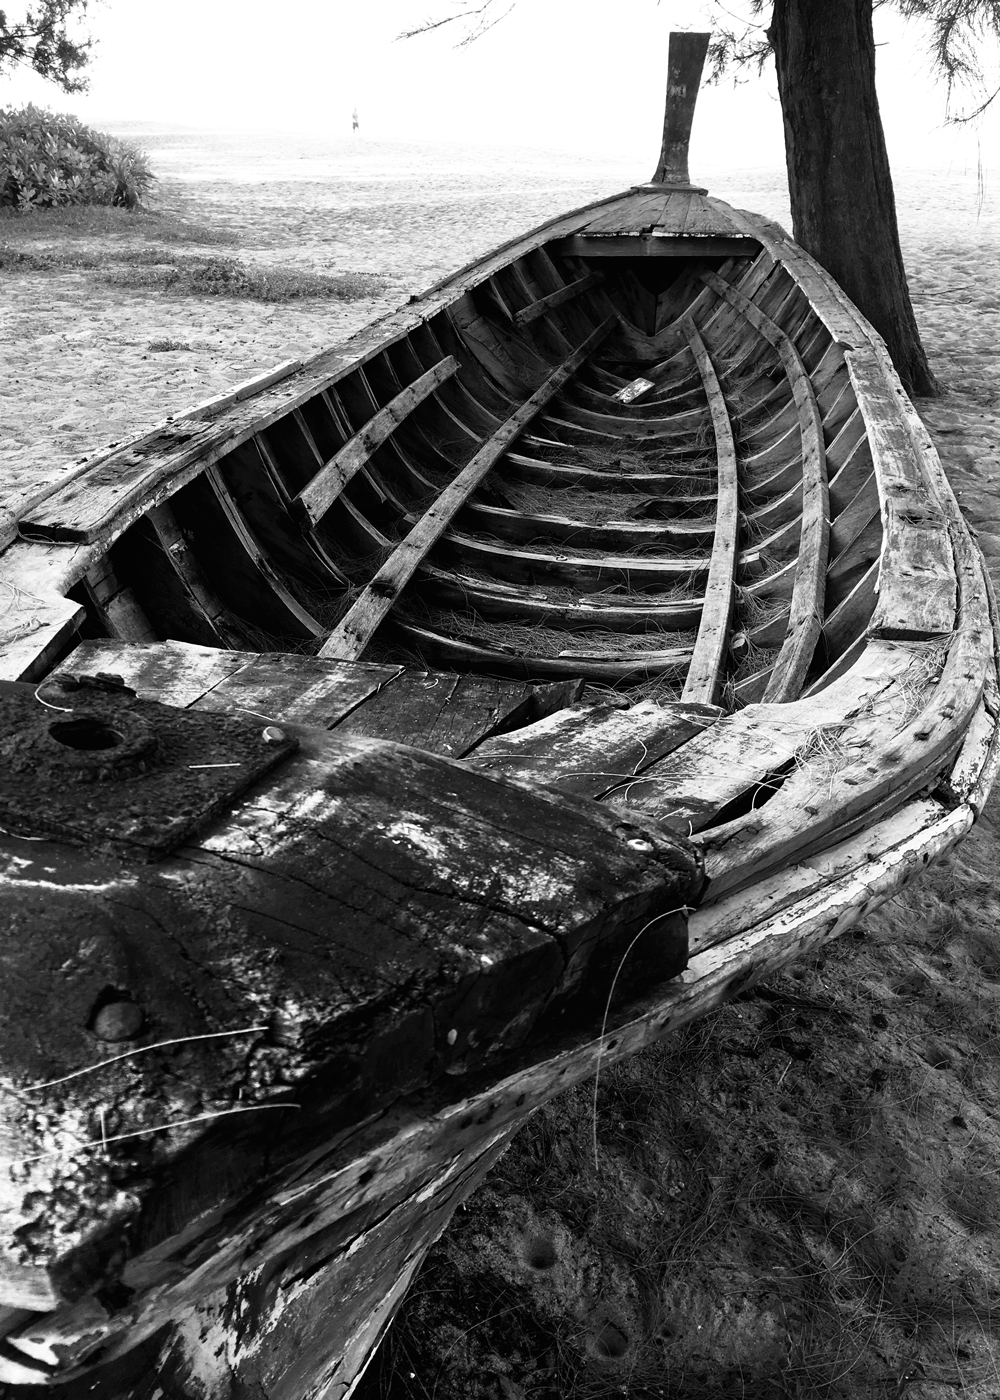 Boat © Naida Ginnane 2018, iPhone 6, Camera on 'Noir' setting.  This scene really lent itself to be shot in black and white. The texture on the boat and sand combined with the shape is enough to create a compelling image without colour.